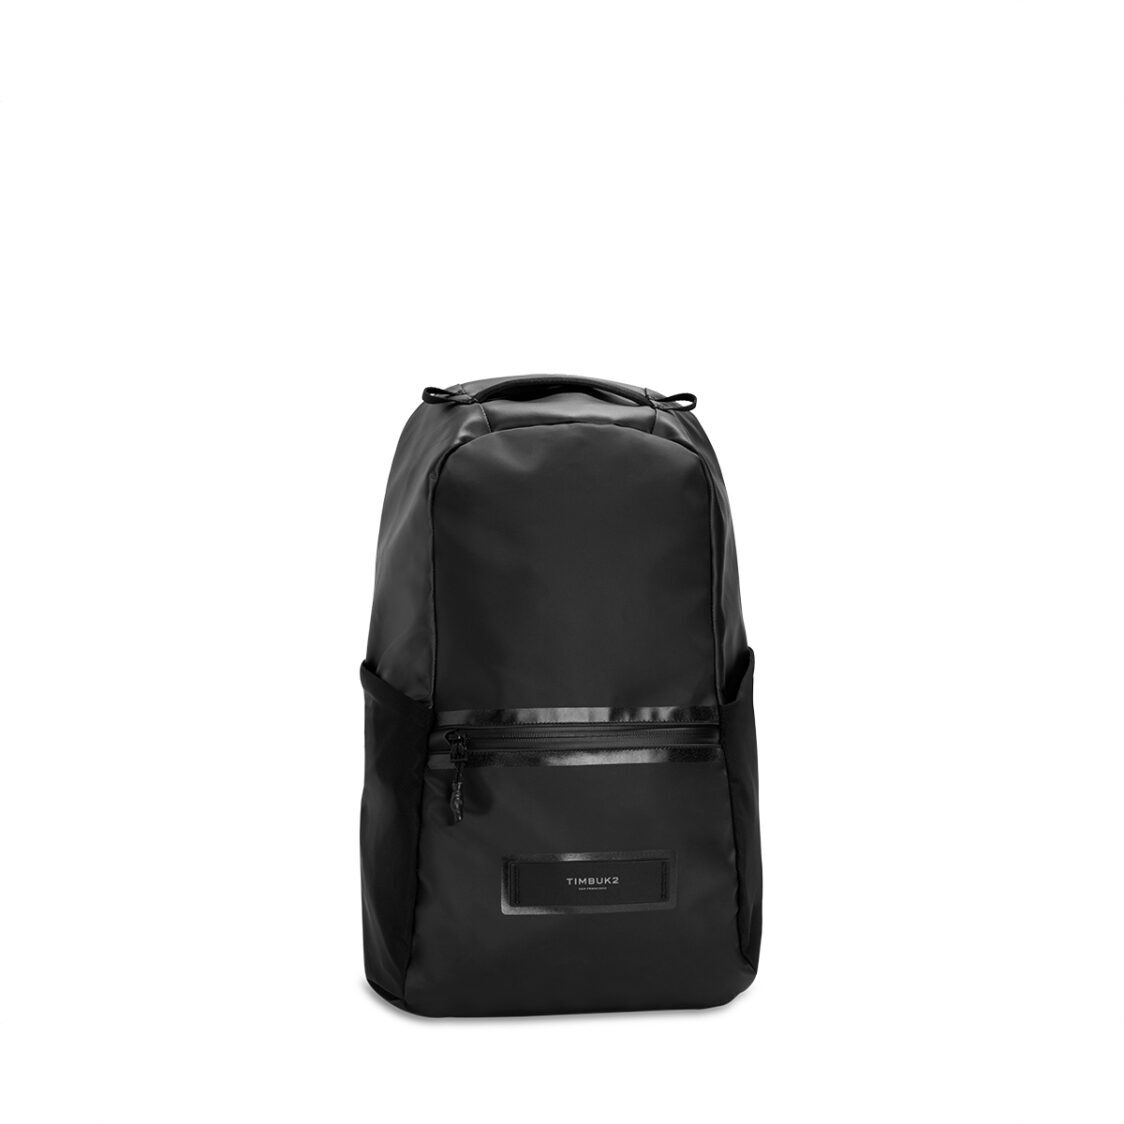 Timbuk2 Especial Shadow Commuter Backpack - Jet Black